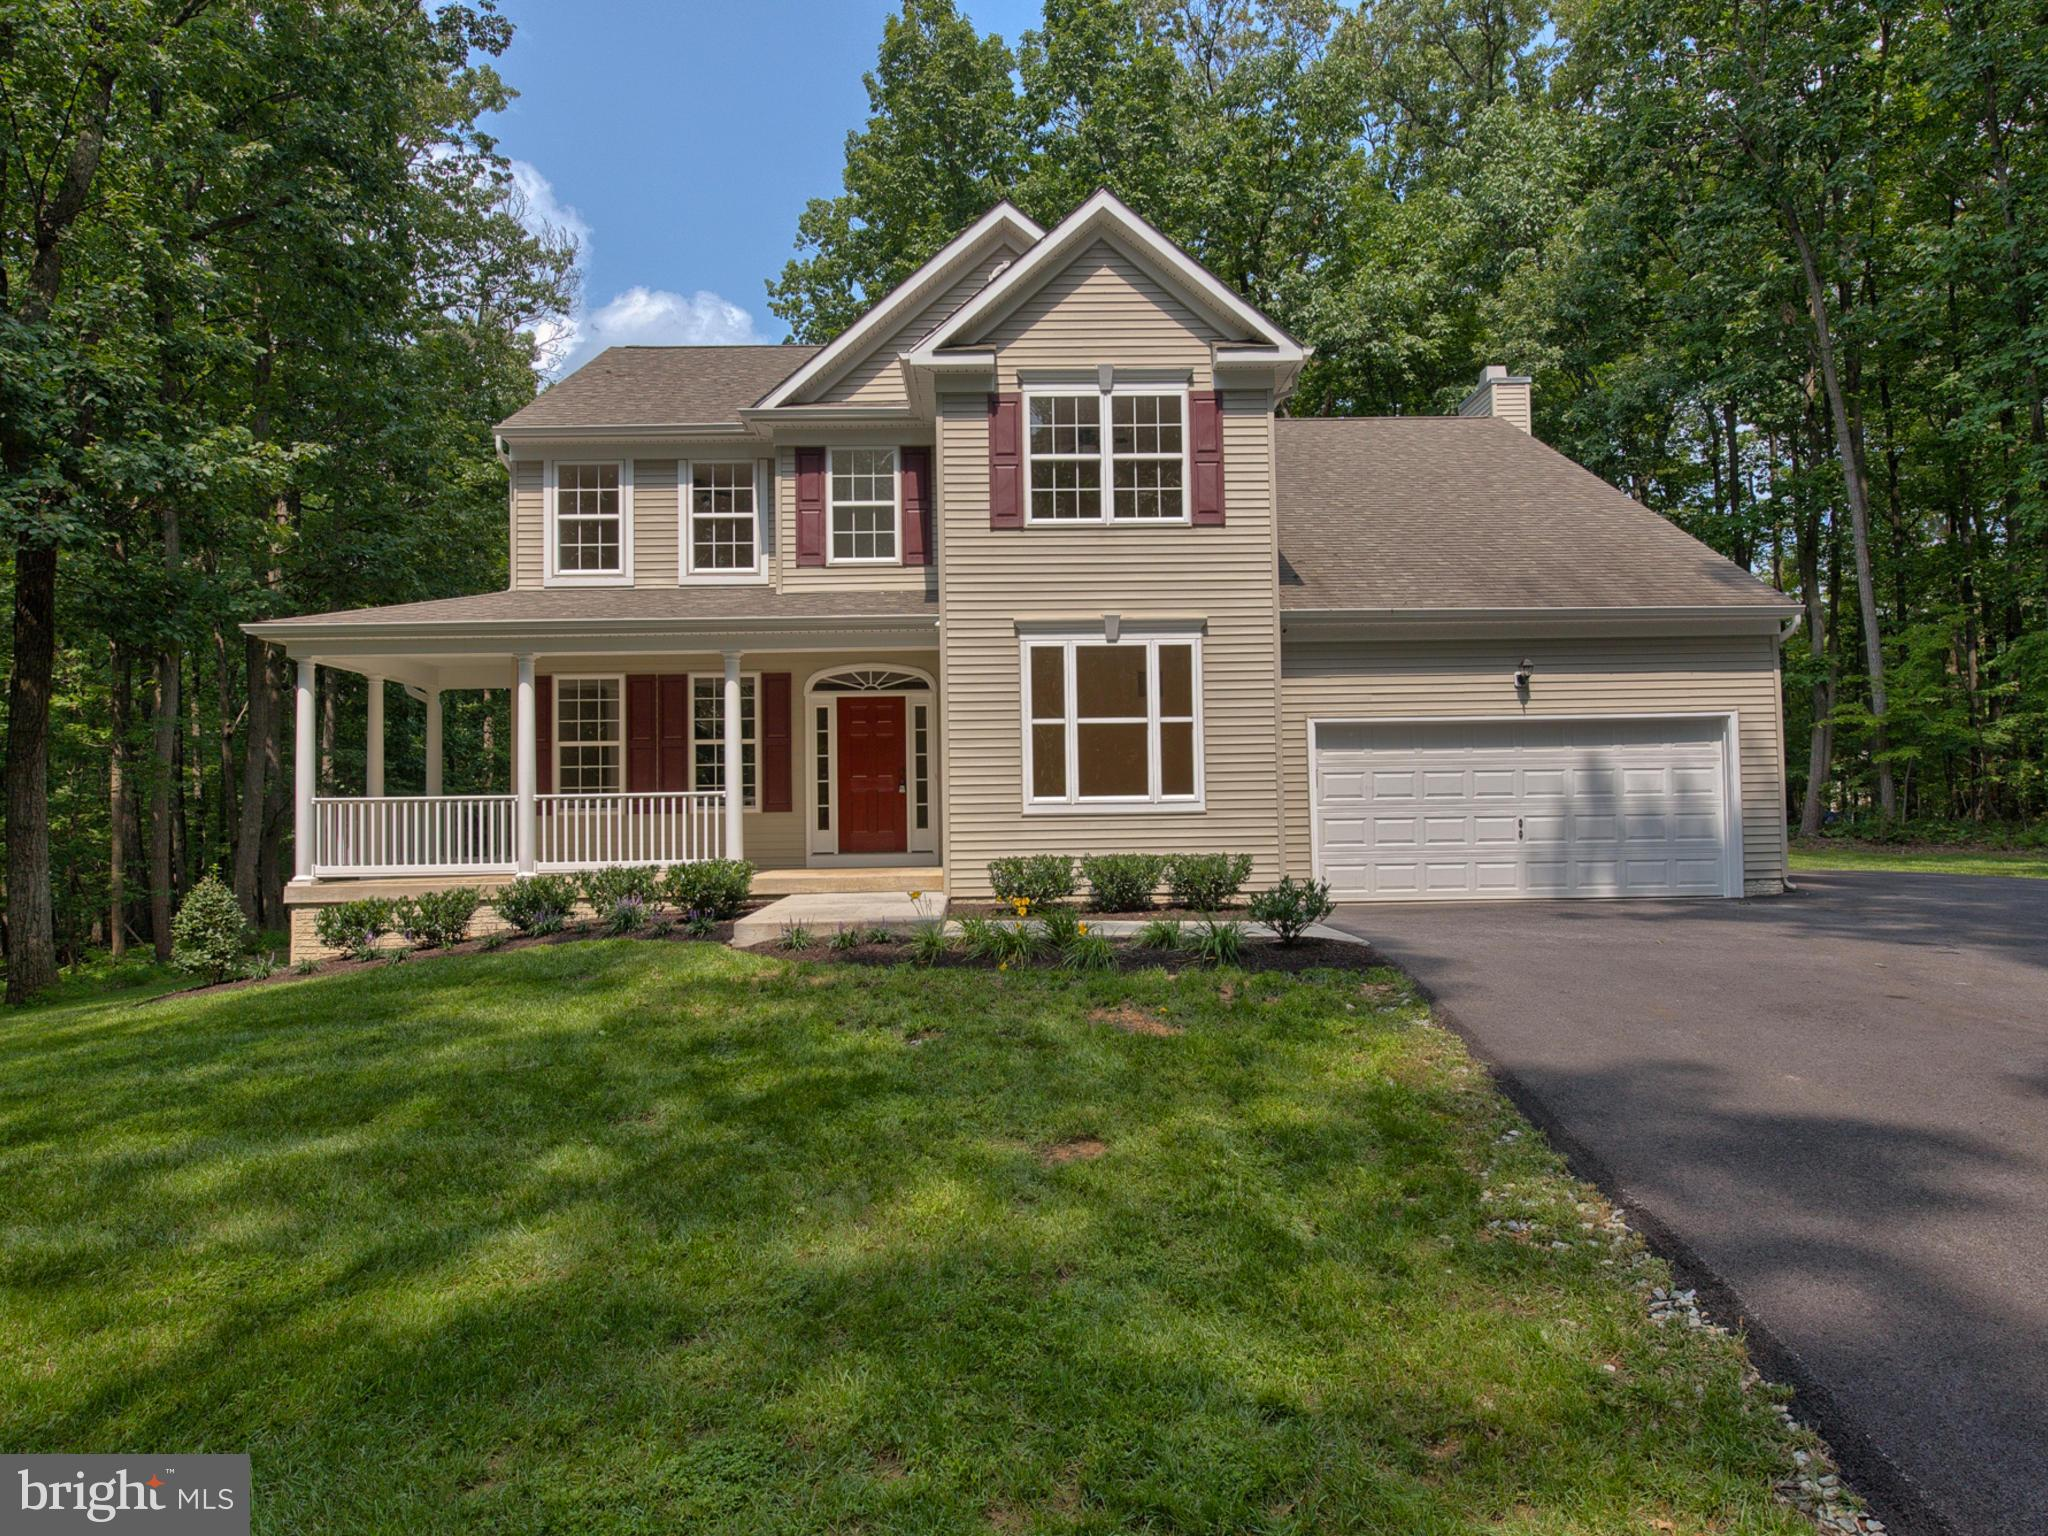 Groovy 14654 Peddicord Road Mount Airy Md 21771 Sold Listing Mls 1002290244 Re Max Of Reading Home Interior And Landscaping Palasignezvosmurscom